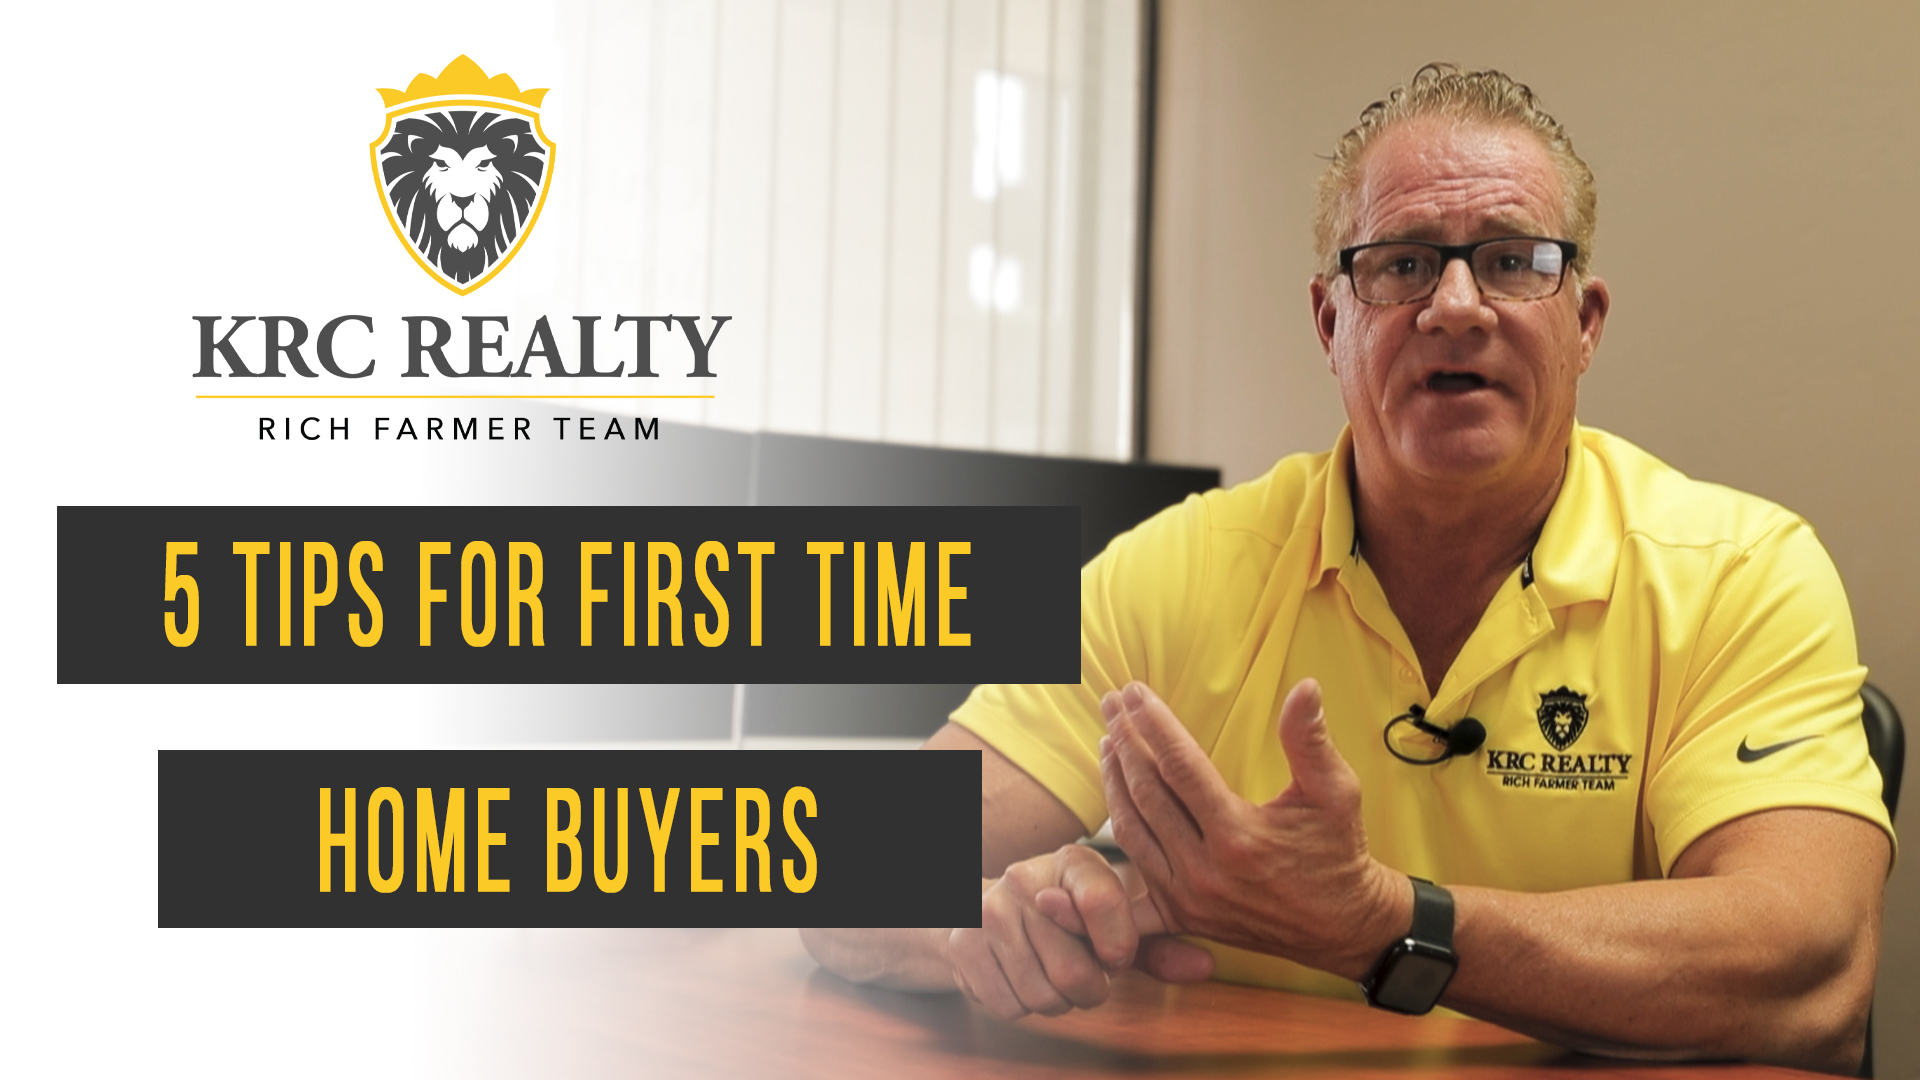 5 Tips For First Time Homebuyer's